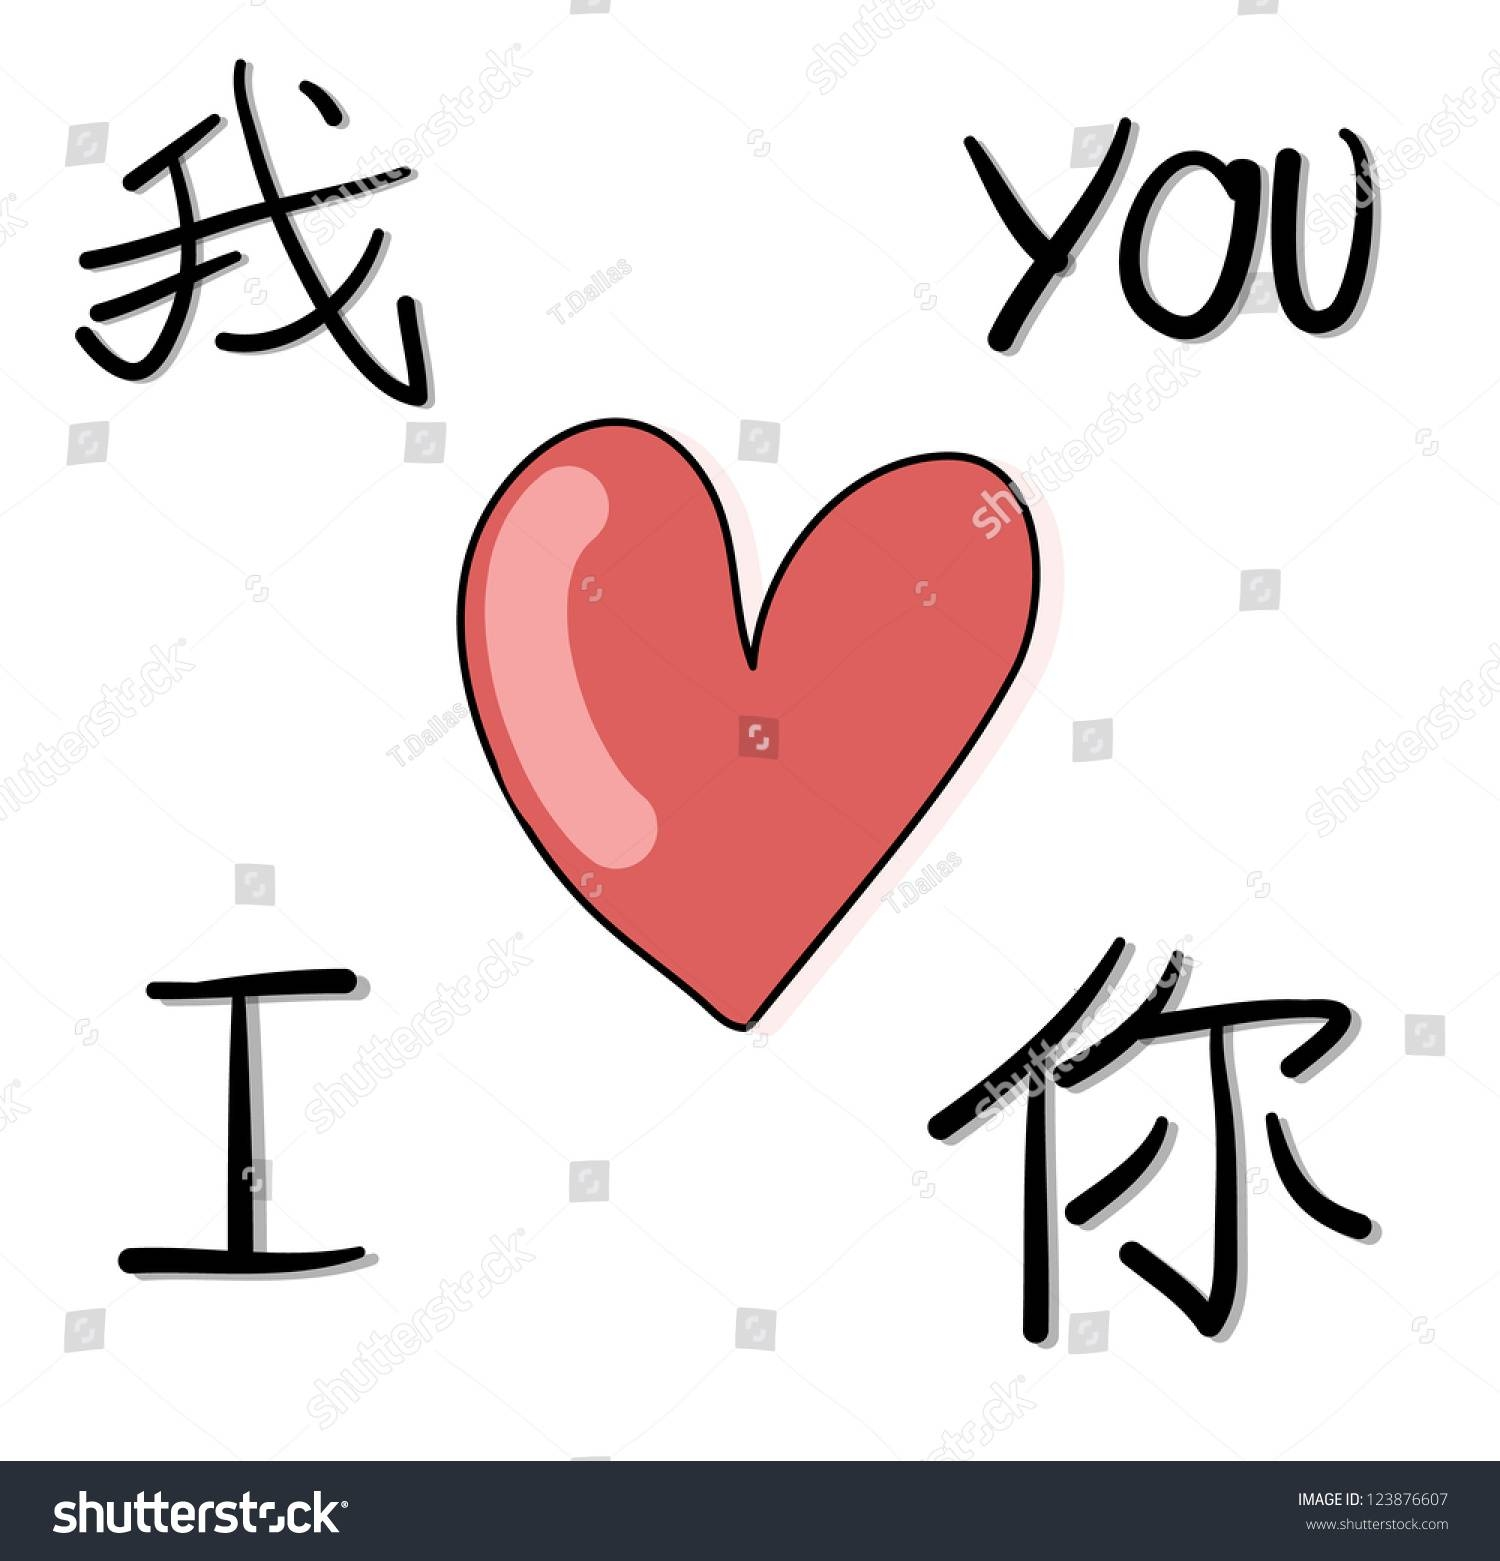 Chinese Love You Wo Ai Ni Vectores En Stock 123876607 – Shutterstock Intended For Best And Newest Wo Ai Ni In Chinese Wall Art (View 14 of 25)